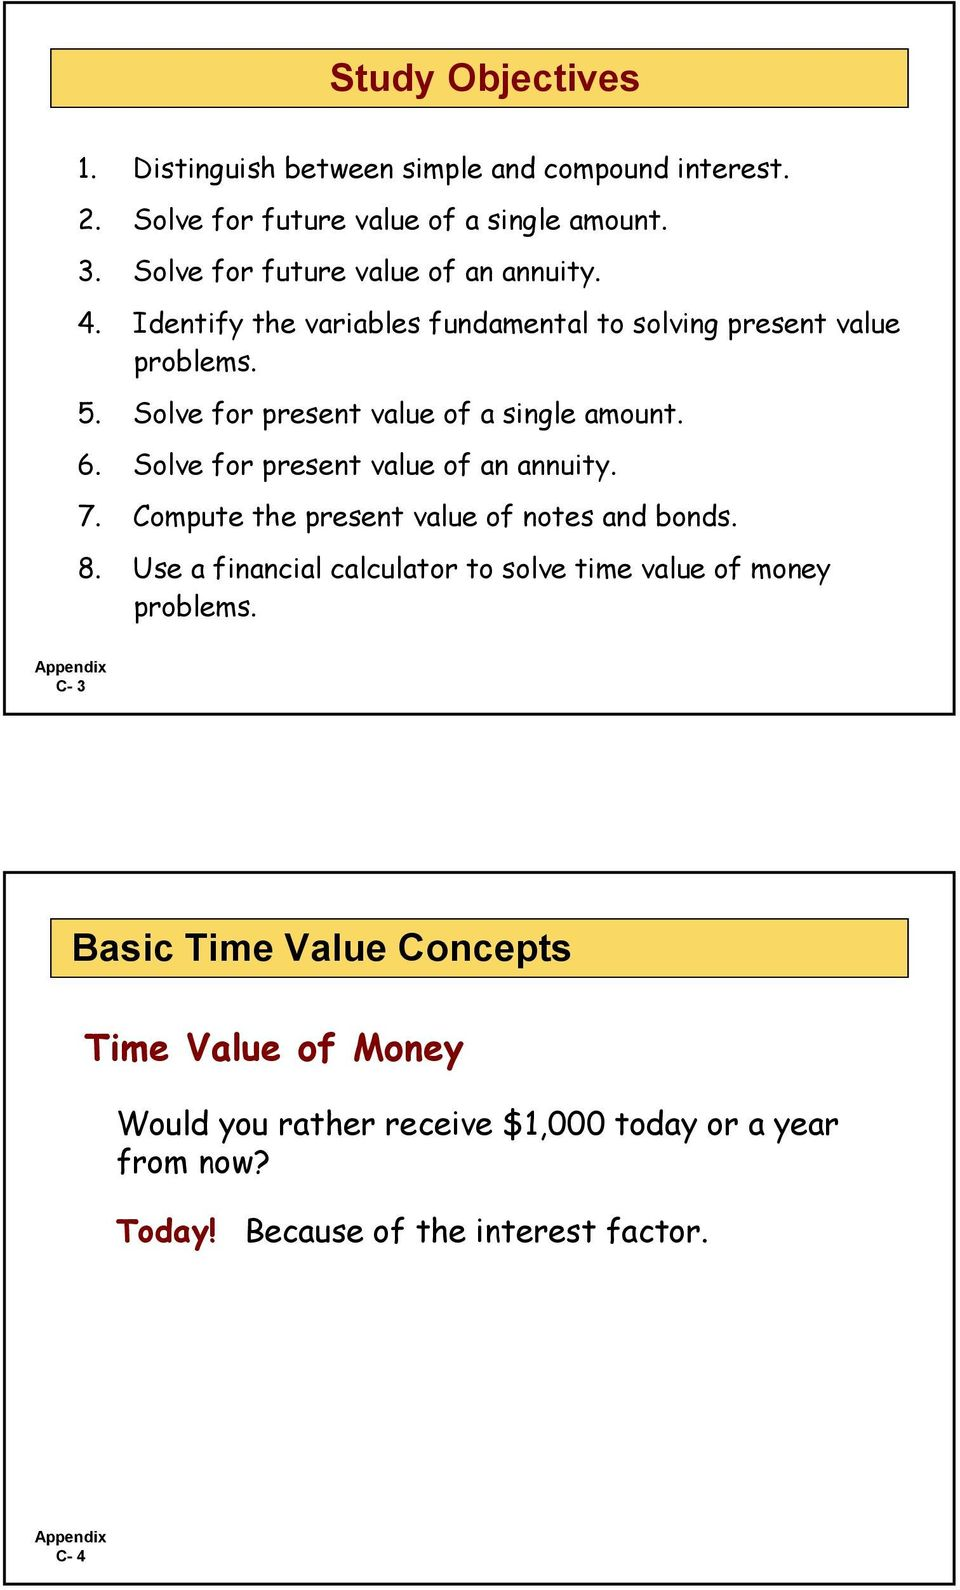 Solve for present value of a single amount. 6. Solve for present value of an annuity. 7. Compute the present value of notes and bonds. 8.